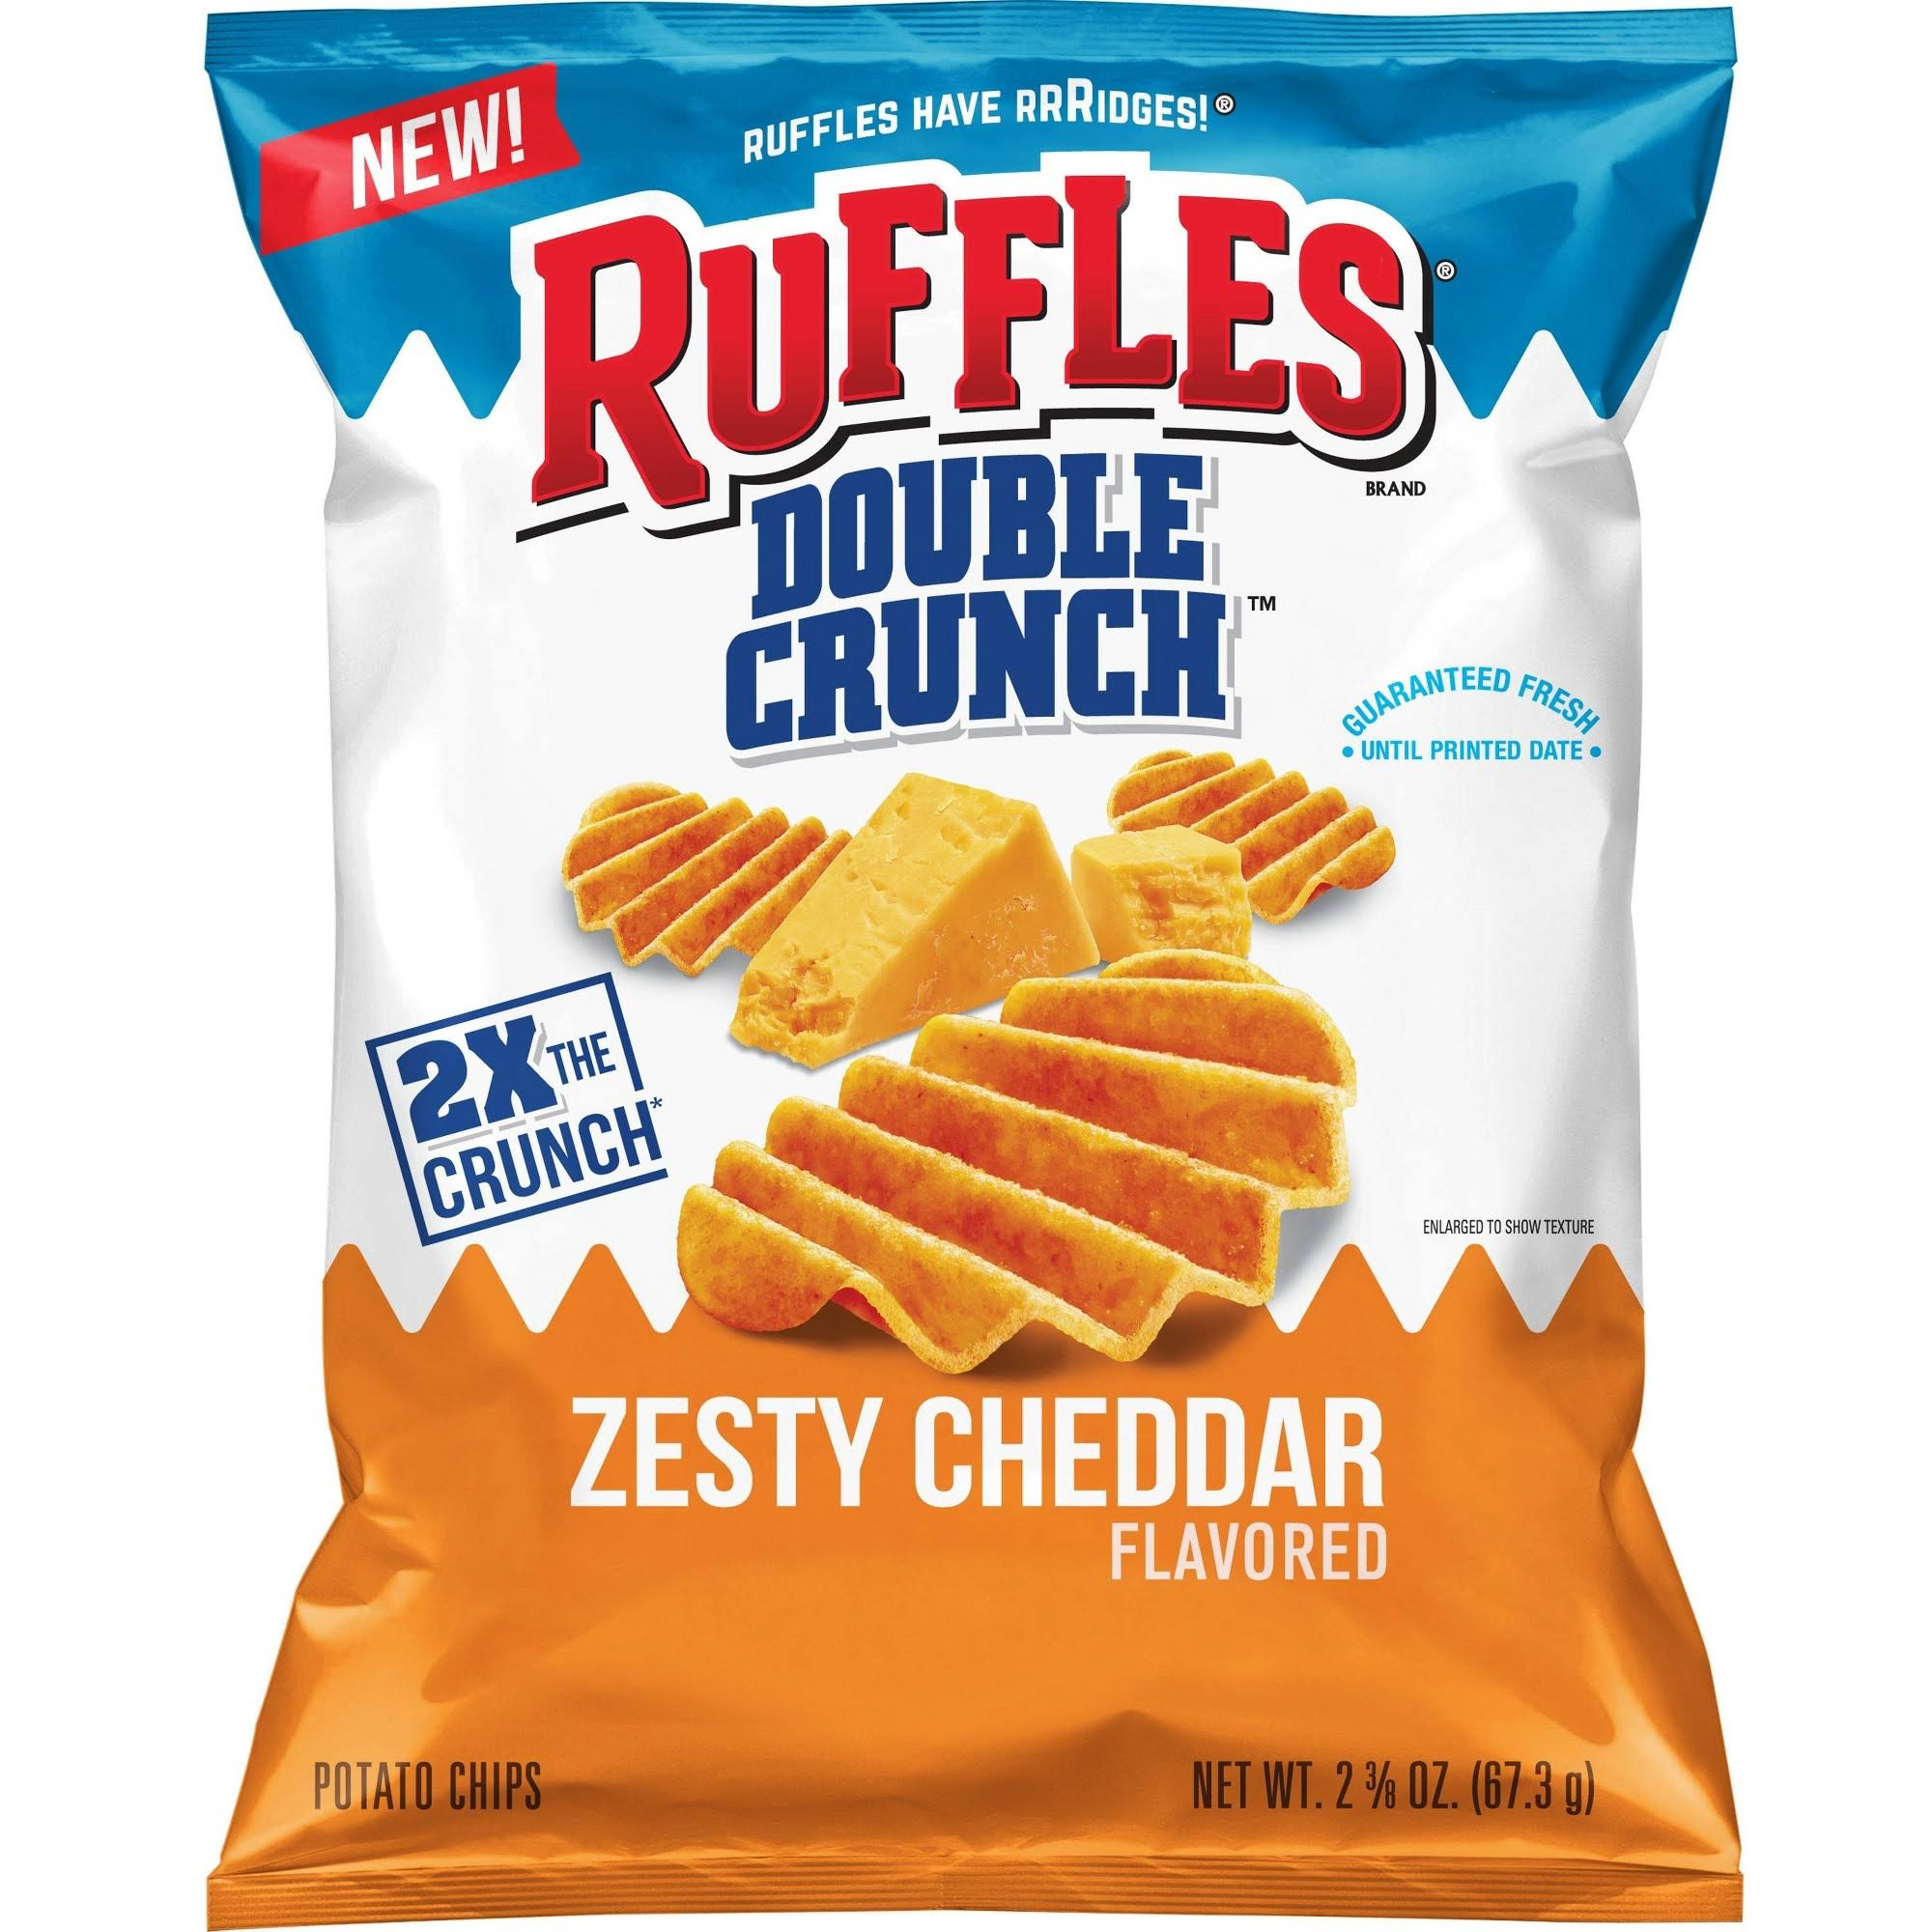 Ruffles Double Crunch Zesty Cheddar Flavored Potato Chips - 67.3g